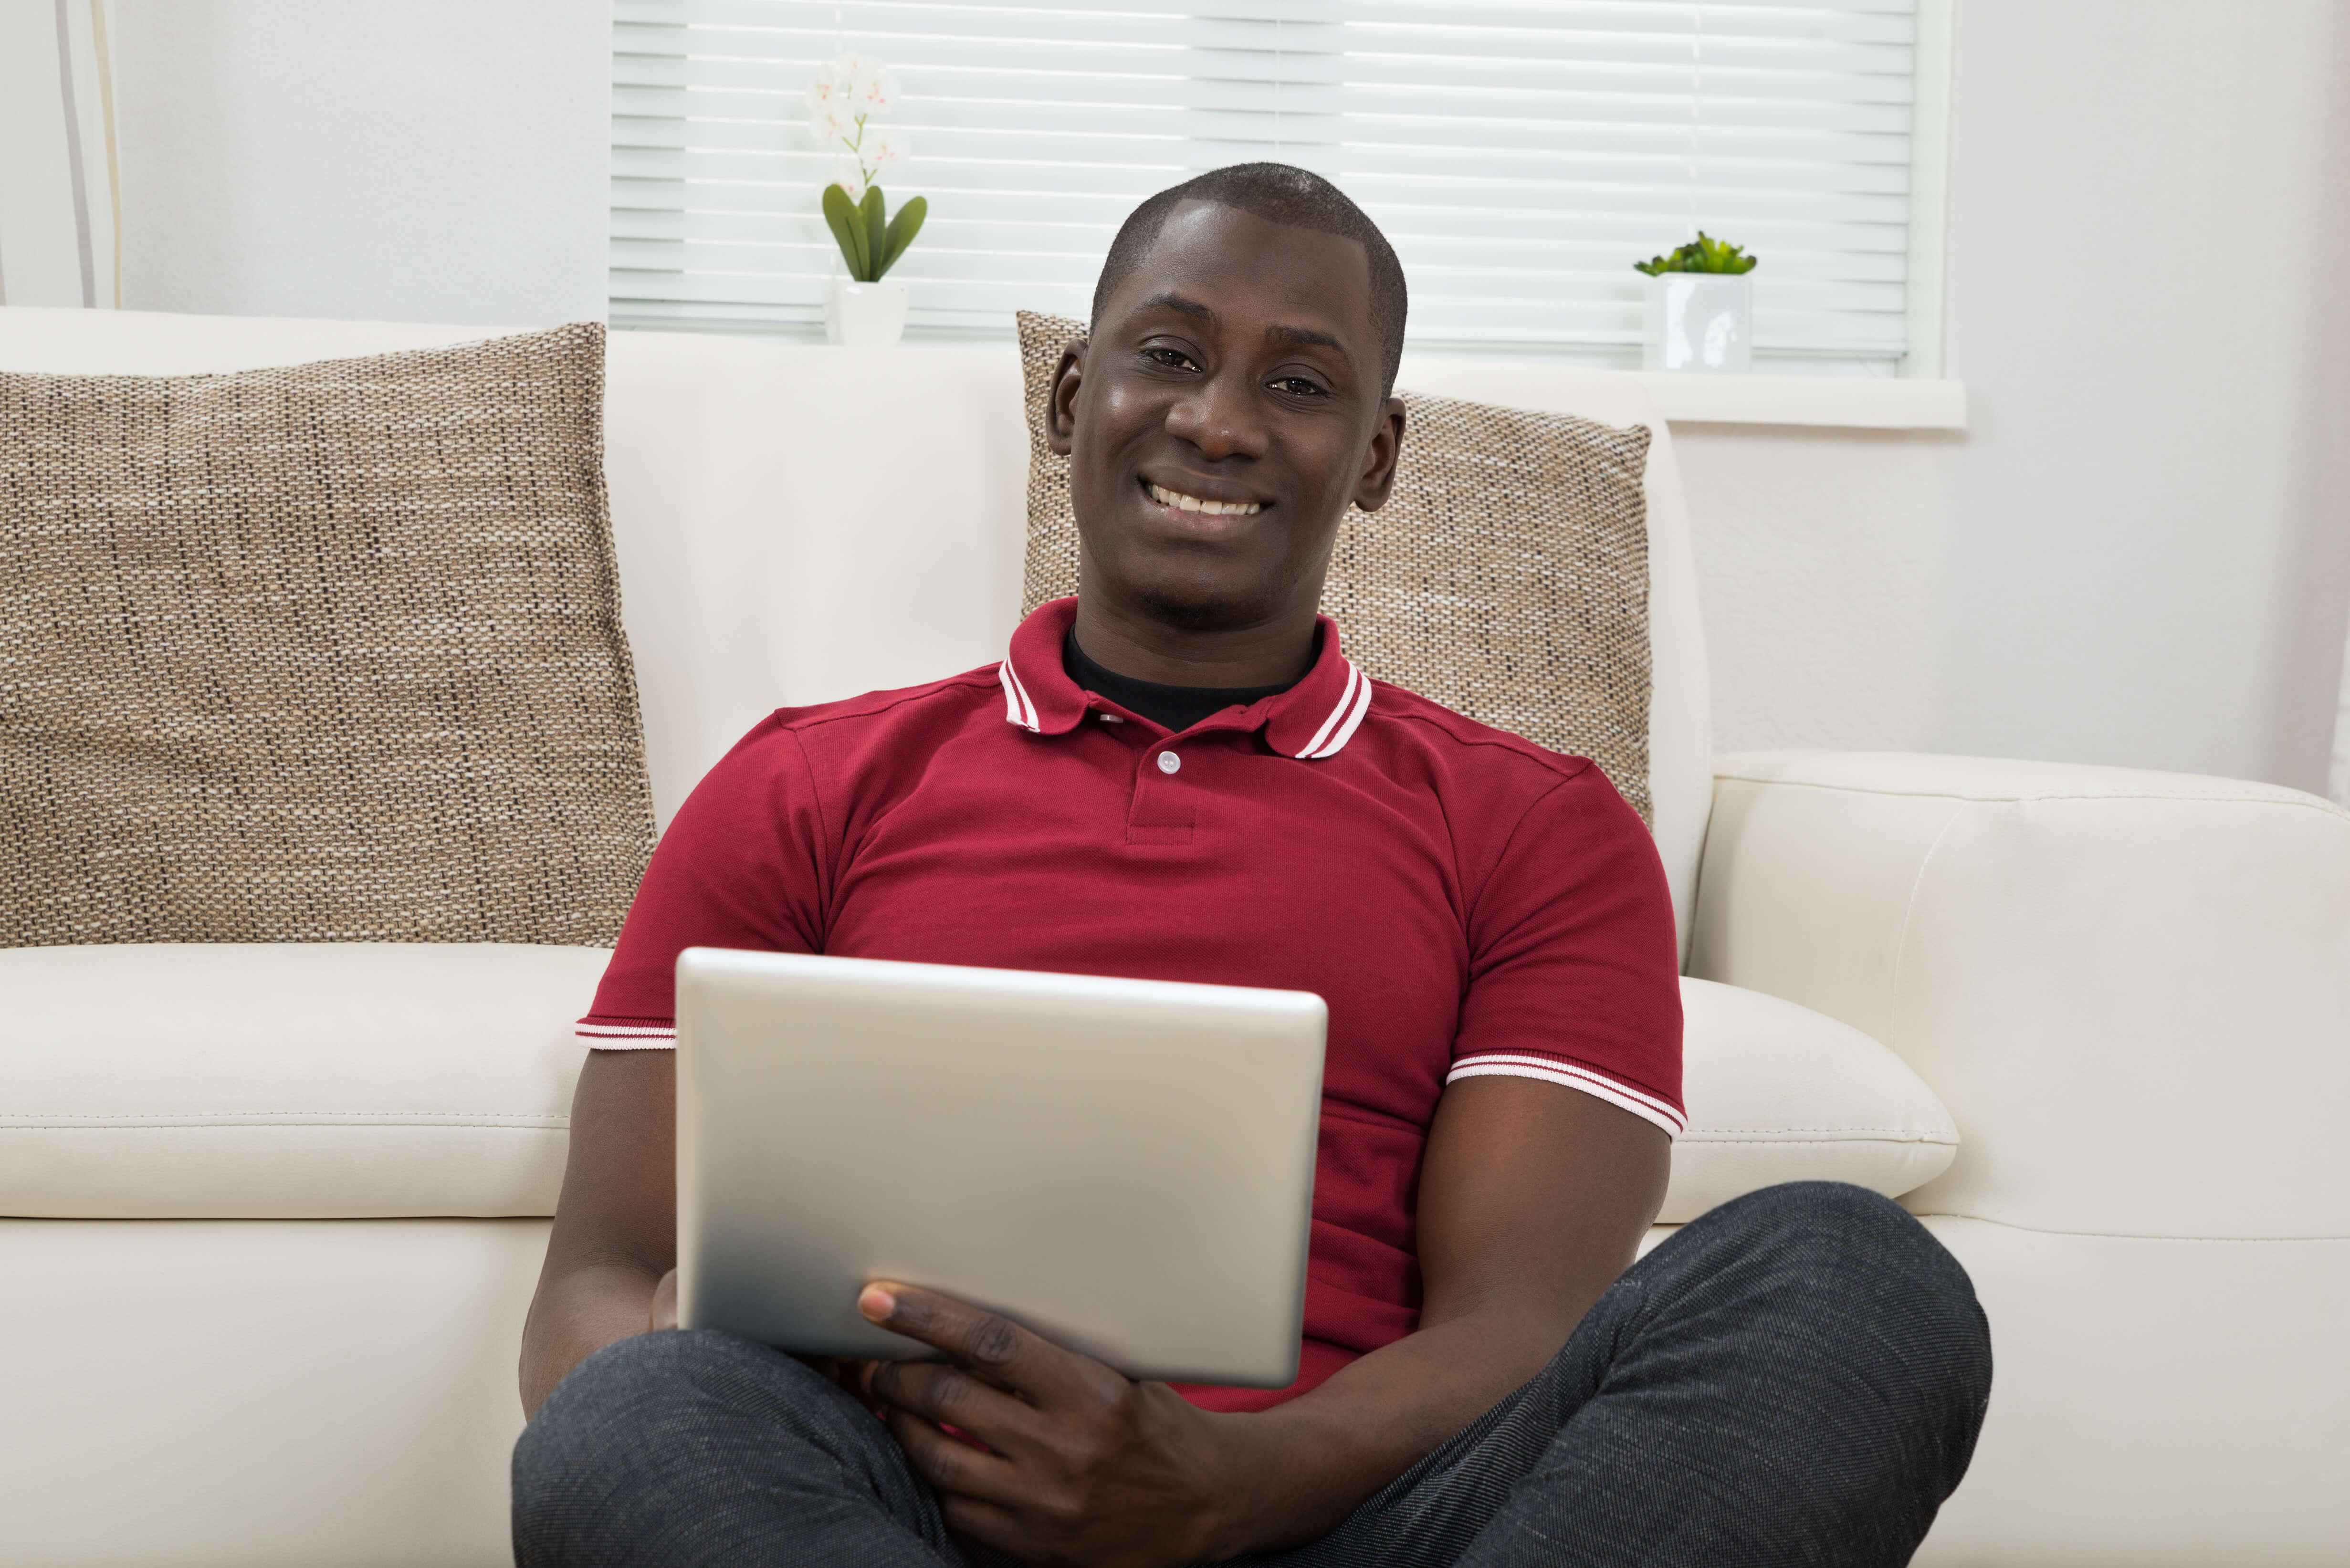 Man sitting comfortably on the floor holding a tablet to demonstrate the ease of attending a live orientation webinar.